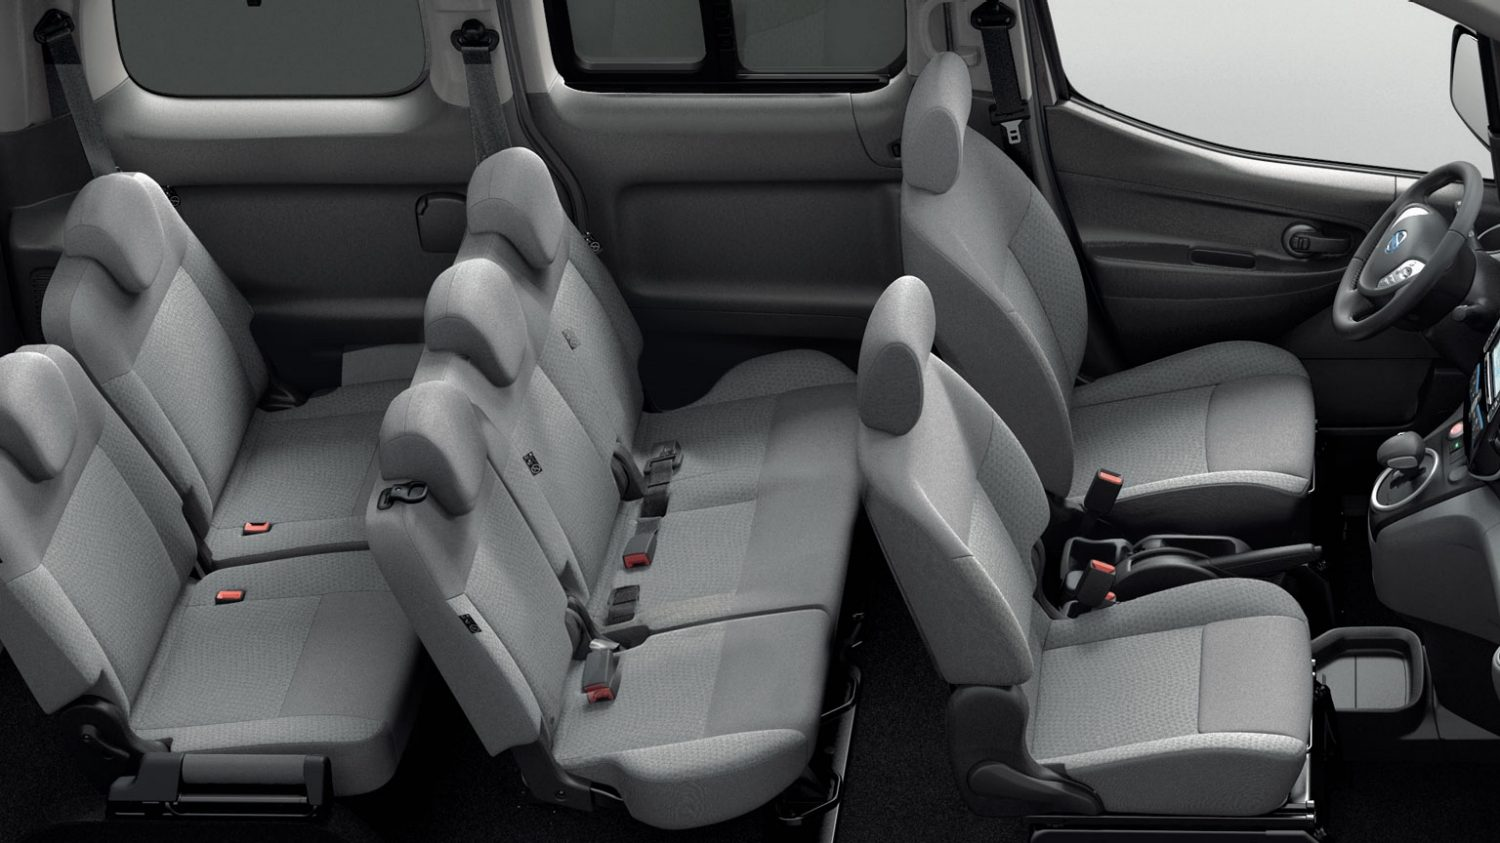 design nissan e nv200 evalia elektrische mpv nissan. Black Bedroom Furniture Sets. Home Design Ideas